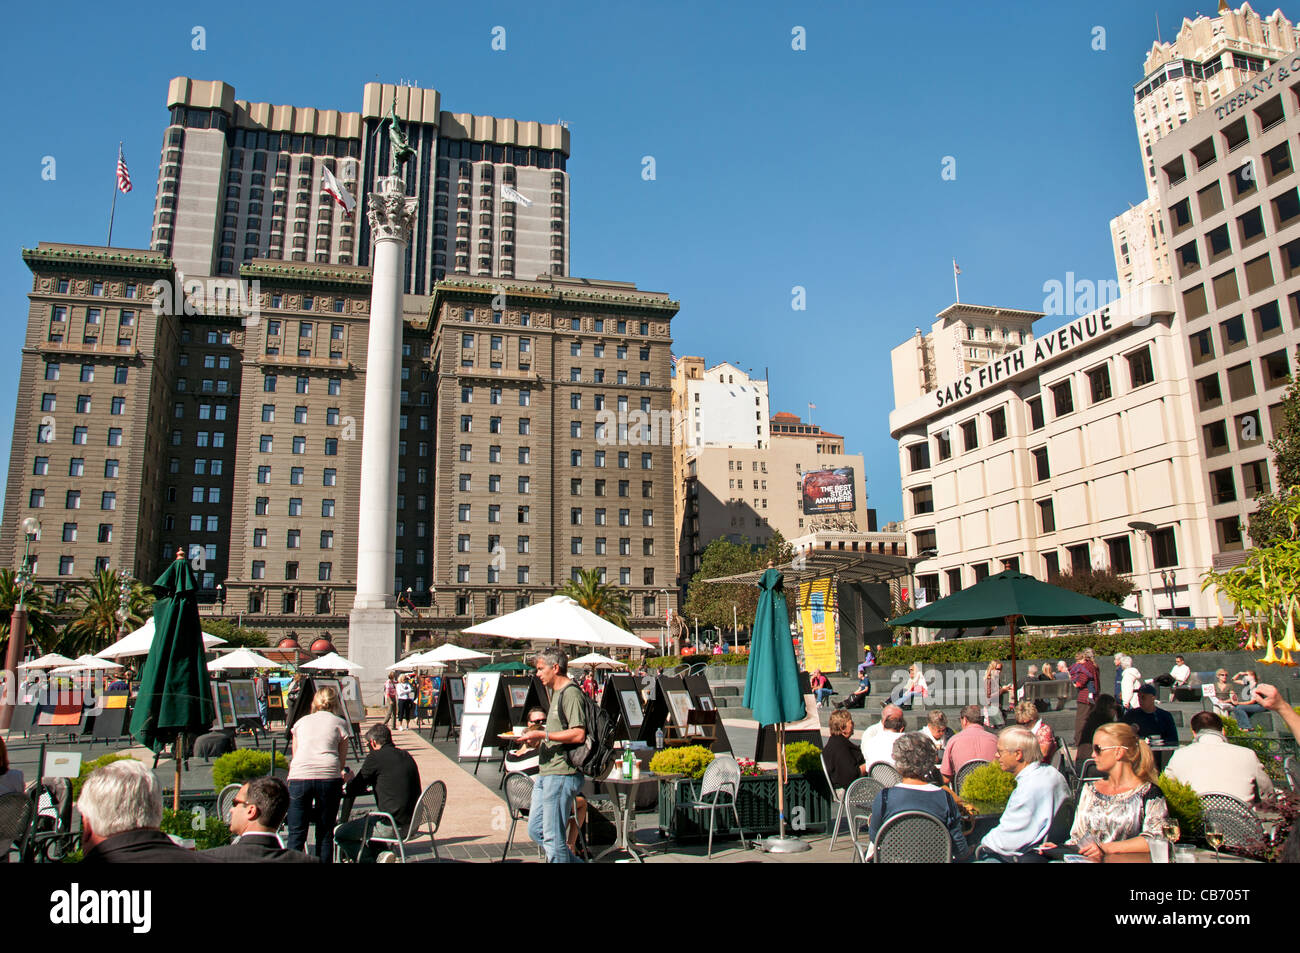 Union Square San Francisco California City Bar Pavement  Saks Fifth Avenue Stock Photo